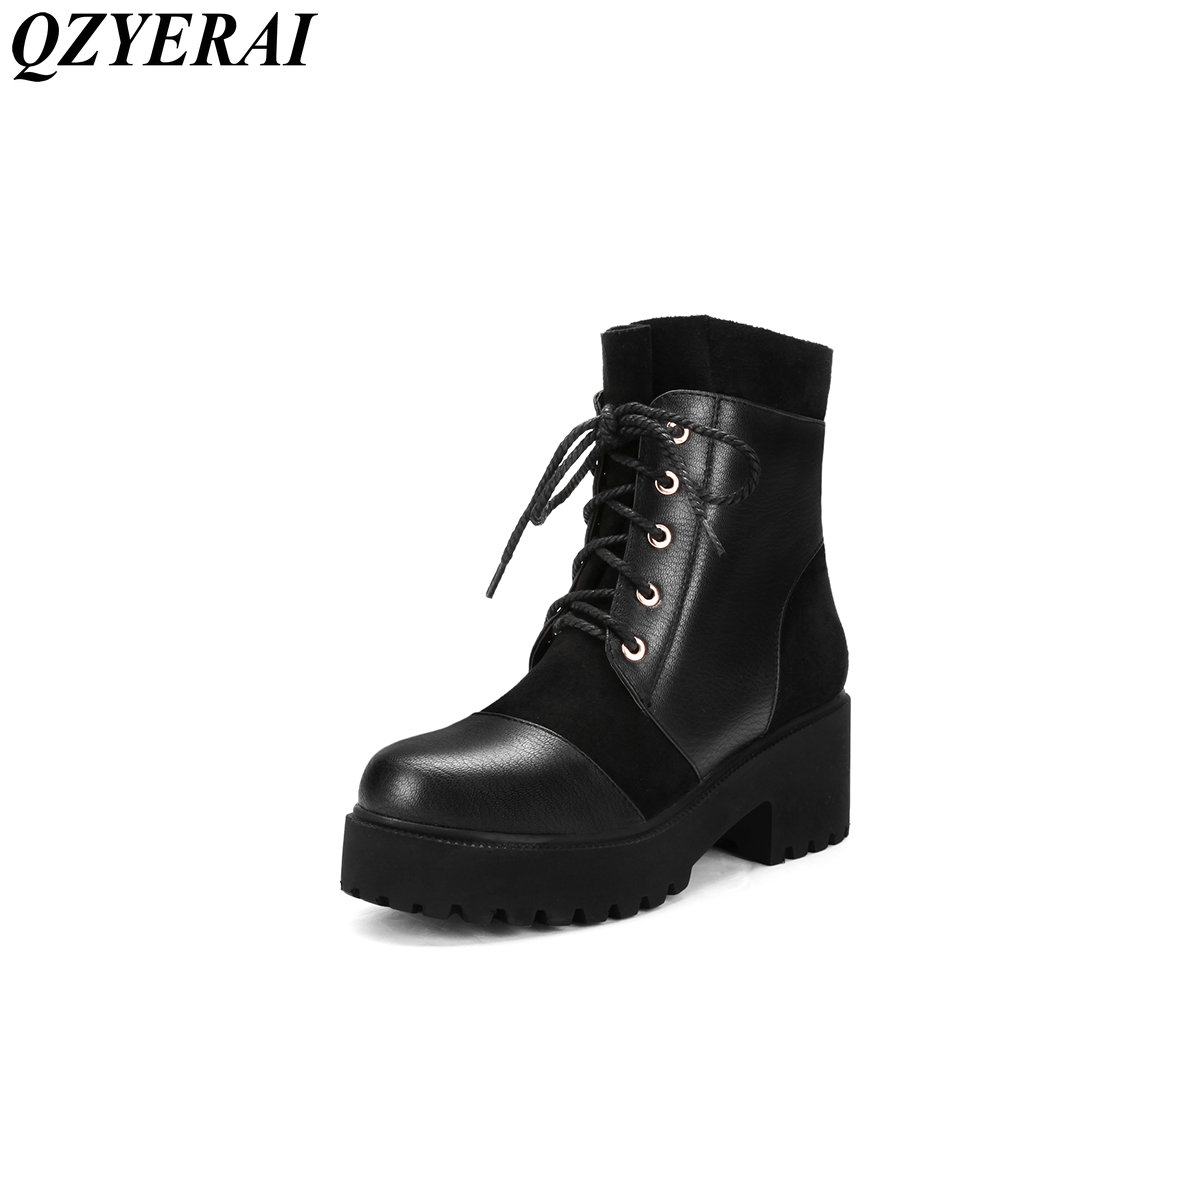 QZYERAI Women shoes new real leather lady Martin boots winter warmth shoes hiking boots casual shoes 2017 new anti slip women winter martin